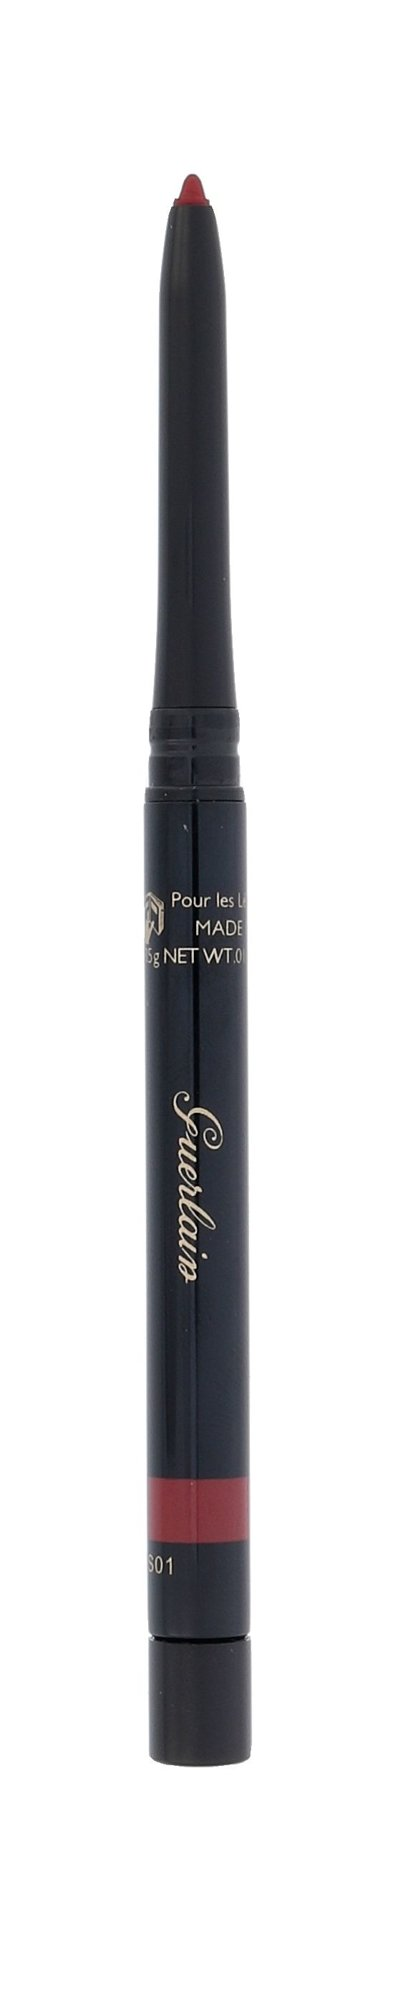 Guerlain The Lip Liner Lip Pencil 0,35ml 25 Iris Noir